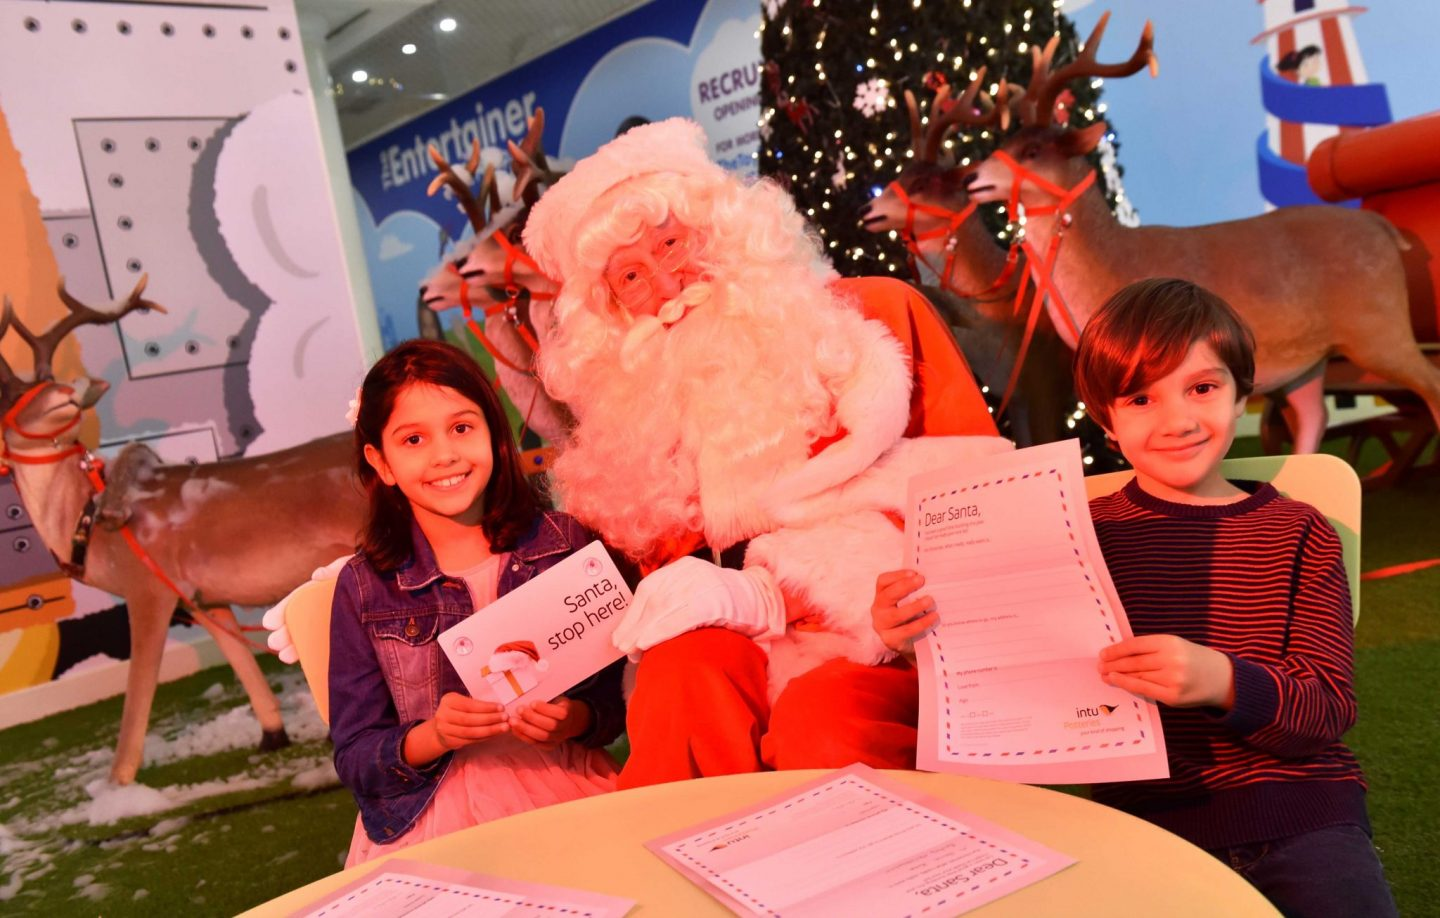 intu-potteries-impossible-gift-christmas-santa-north-pole-stoke-on-trent-letter